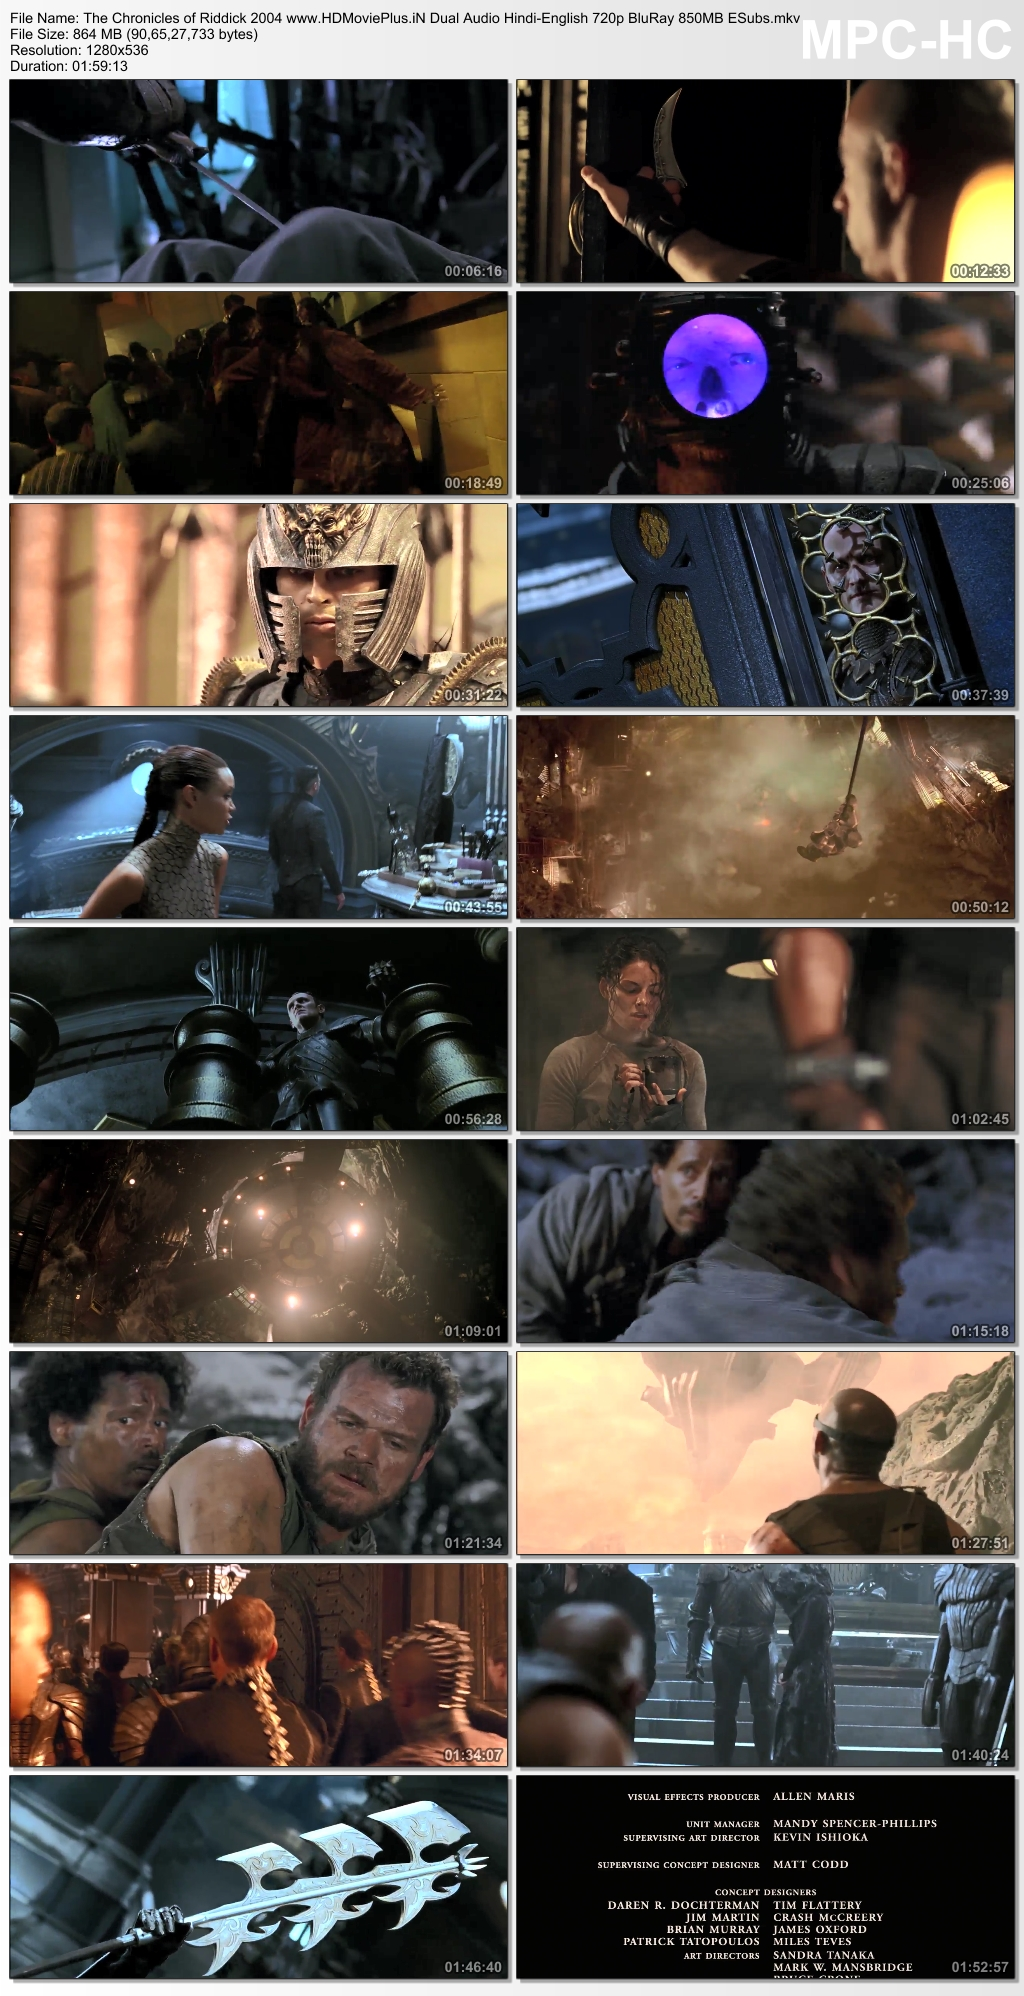 The Chronicles of Riddick 2004 Dual Audio